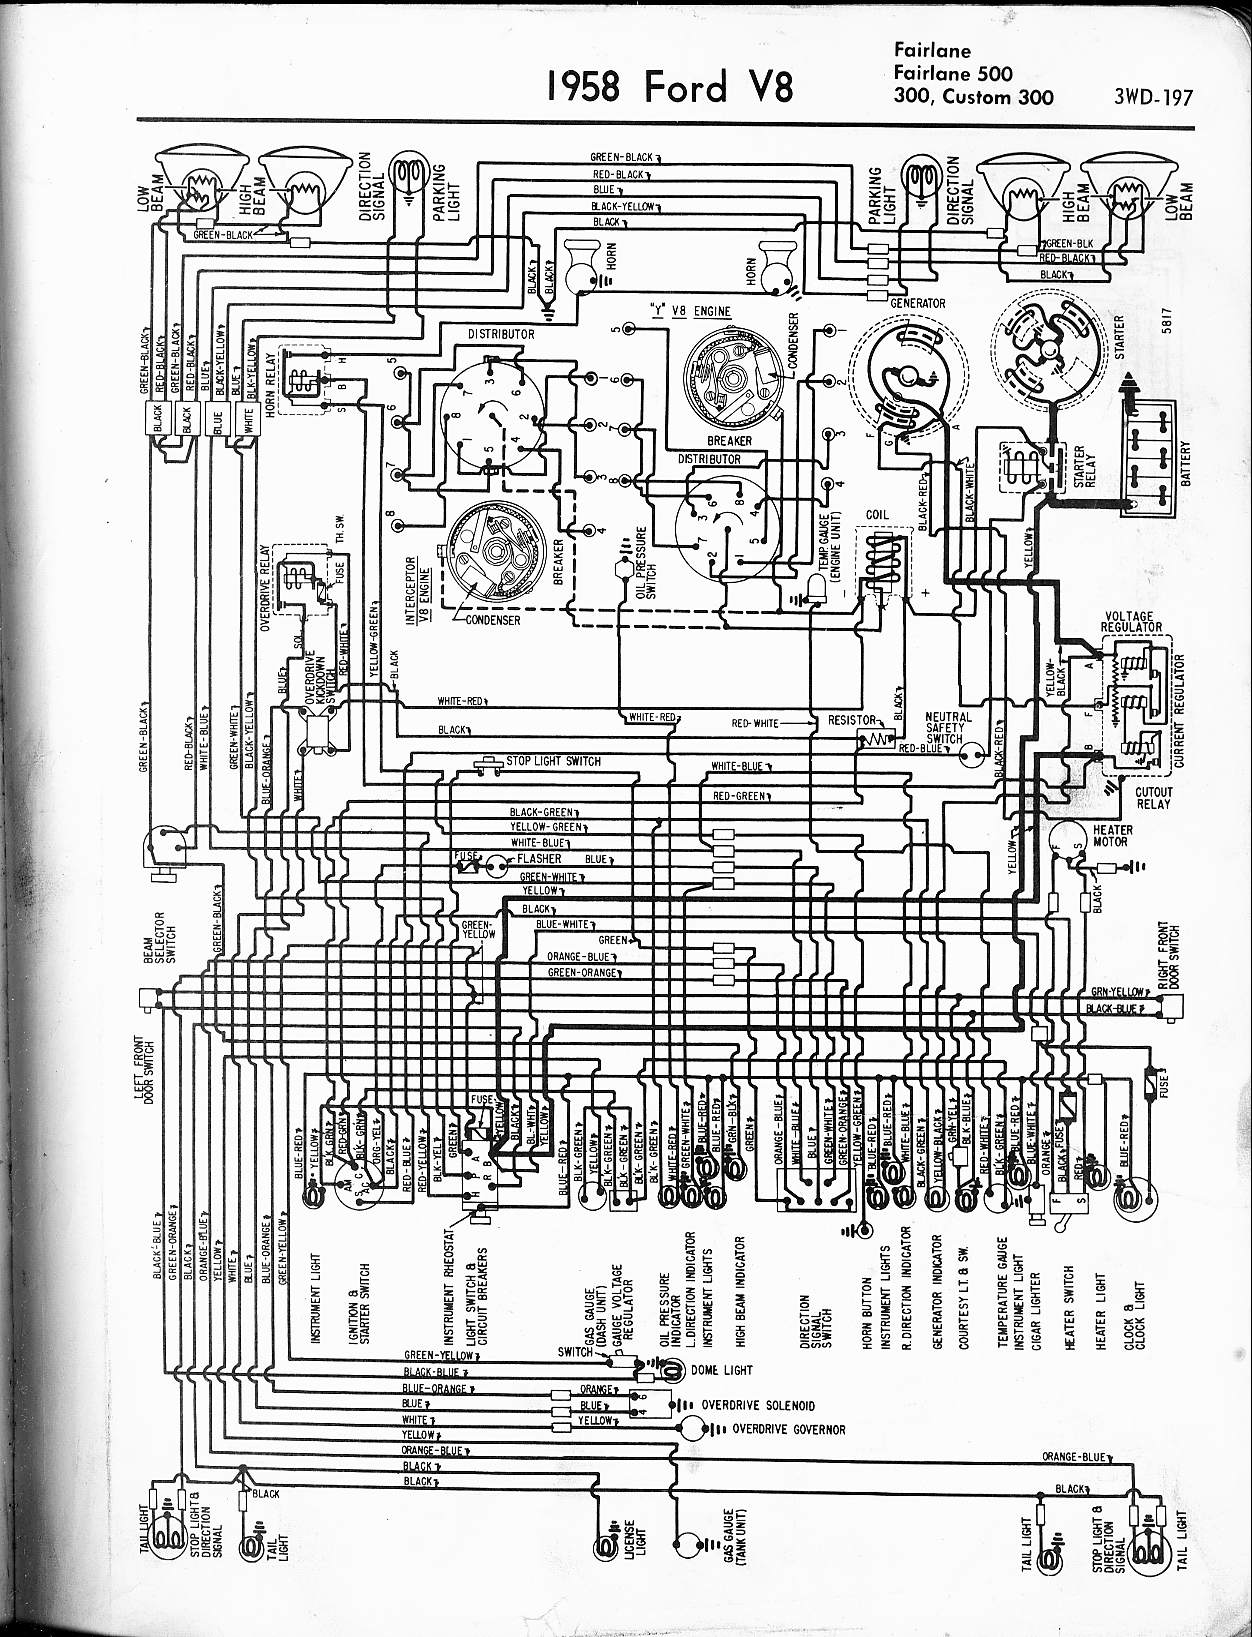 57-65 ford wiring diagrams 1959 ford fairlane wiring diagram ford nc fairlane wiring diagram